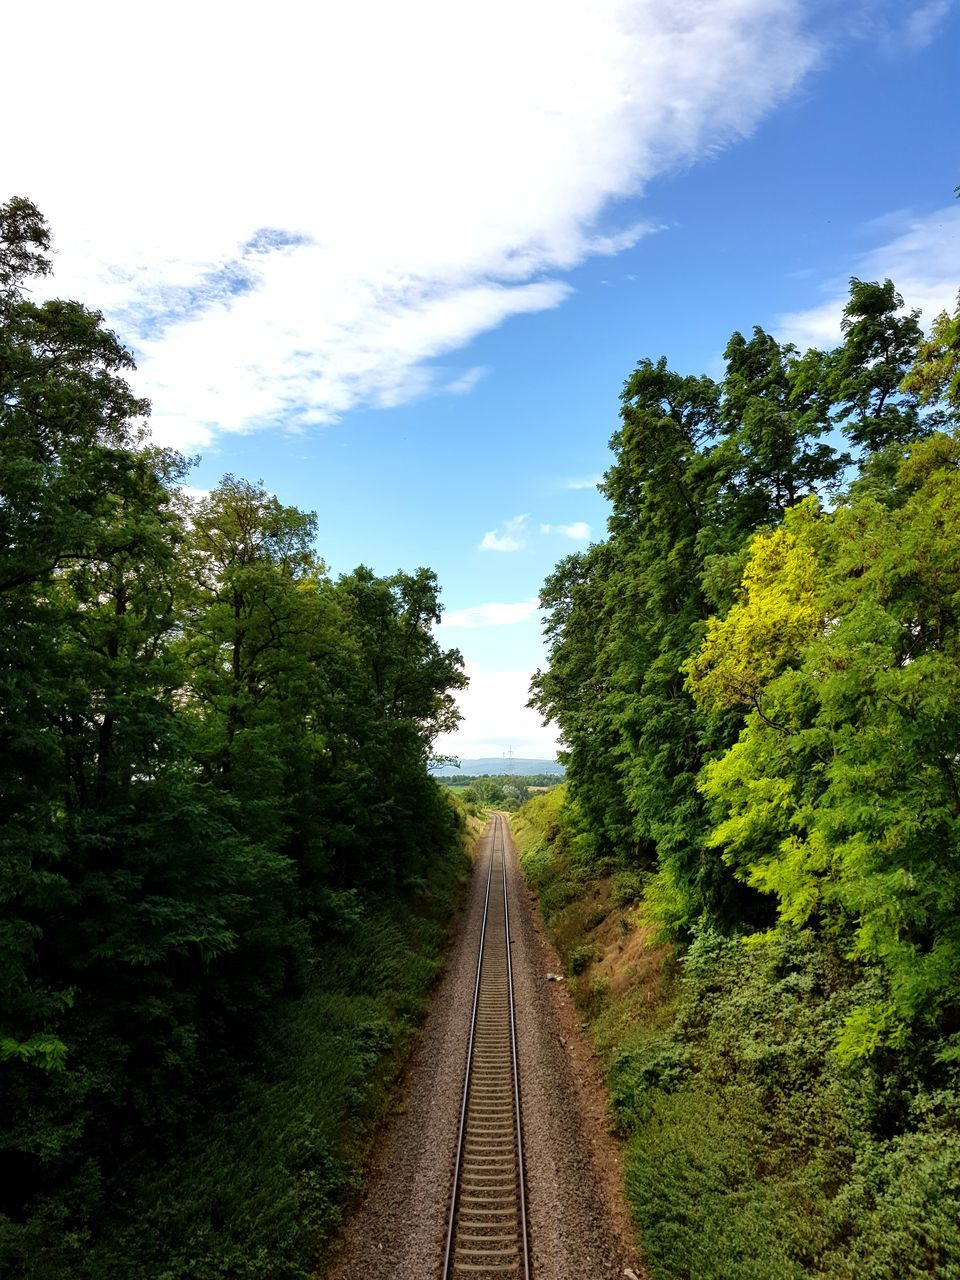 railroad track, tree, railroad, sky, diminishing perspective, landscape, nature, transportation, rail transportation, track, no people, railway, railway track, scenics, blue sky, the way forward, plant, growth, beauty in nature, day, outdoors